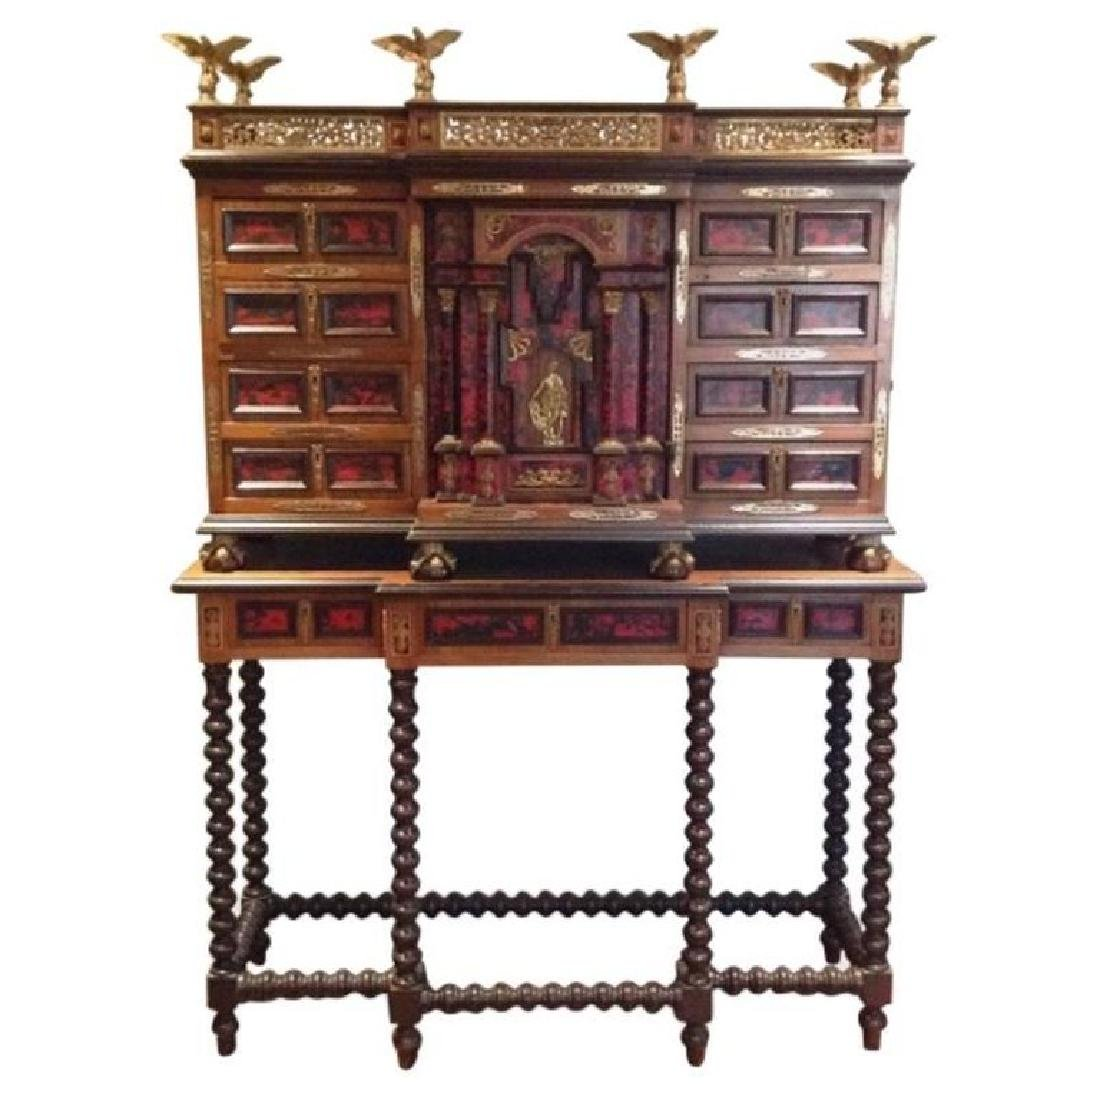 Antique Spanish Baroque Style Vargueno Cabinet on Stand